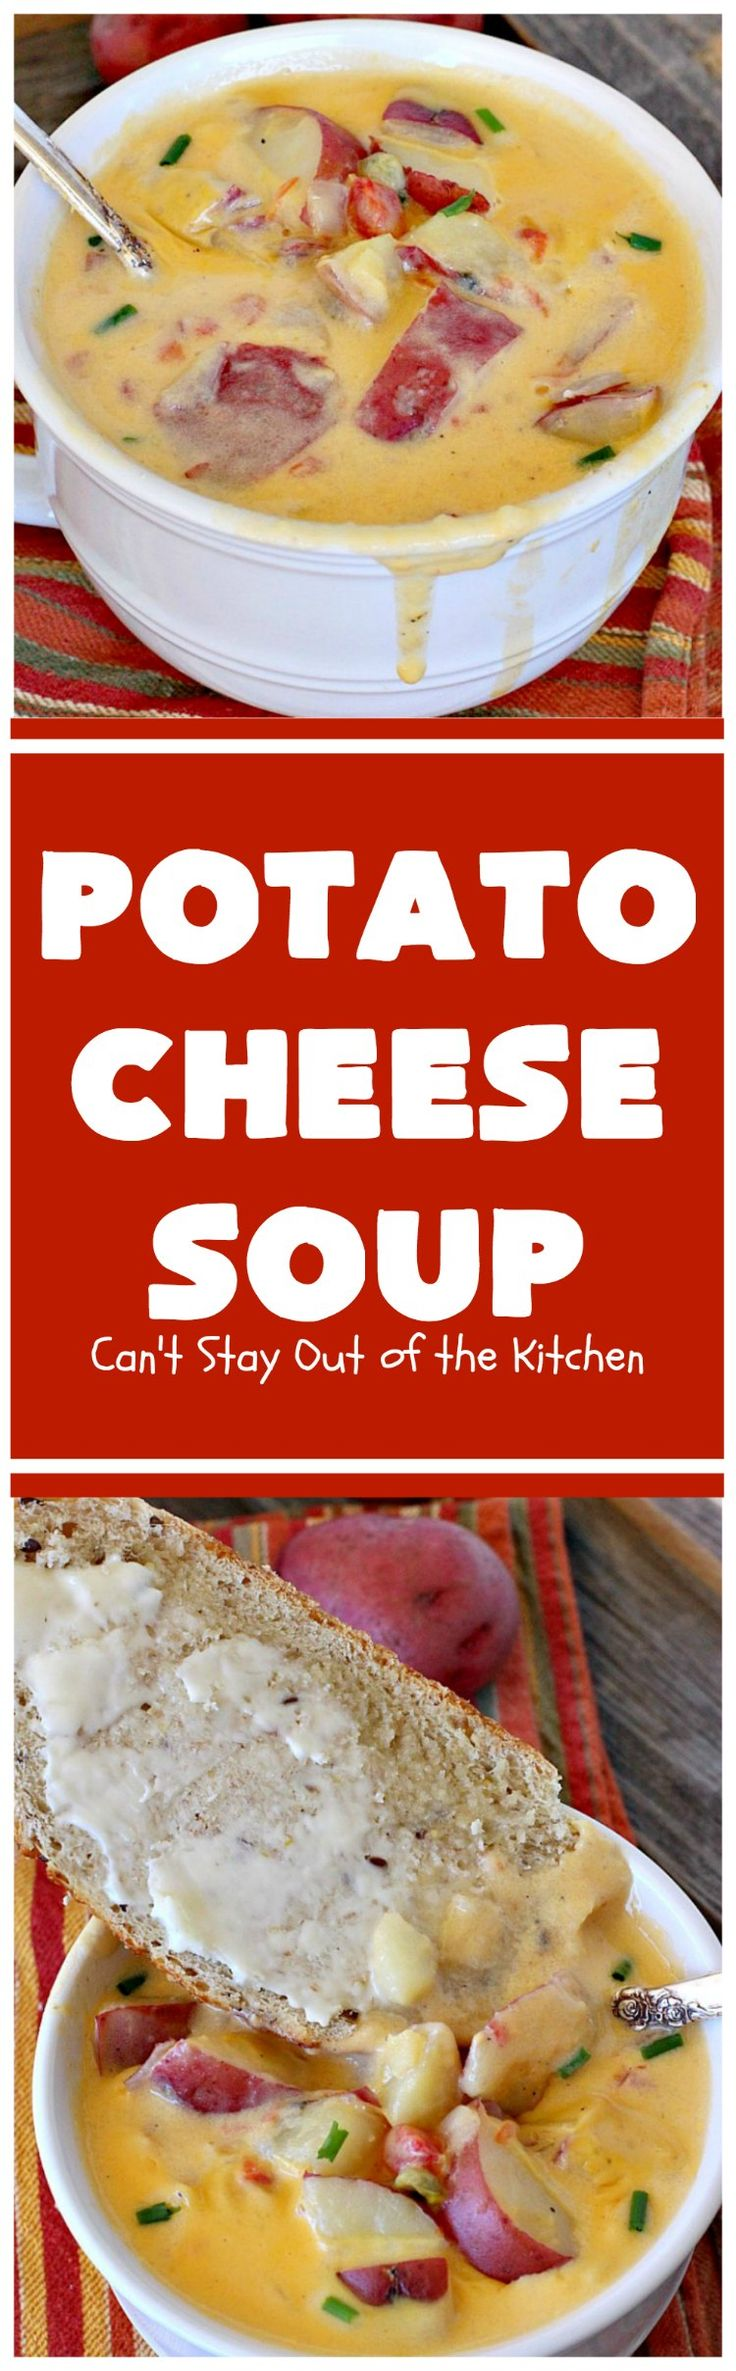 Potato Cheese Soup   Can't Stay Out of the Kitchen   this amazing #soup will soon become a favorite! Uses diced #tomatoes with green #chilies & #velveeta. Quick & easy, too. #glutenfree